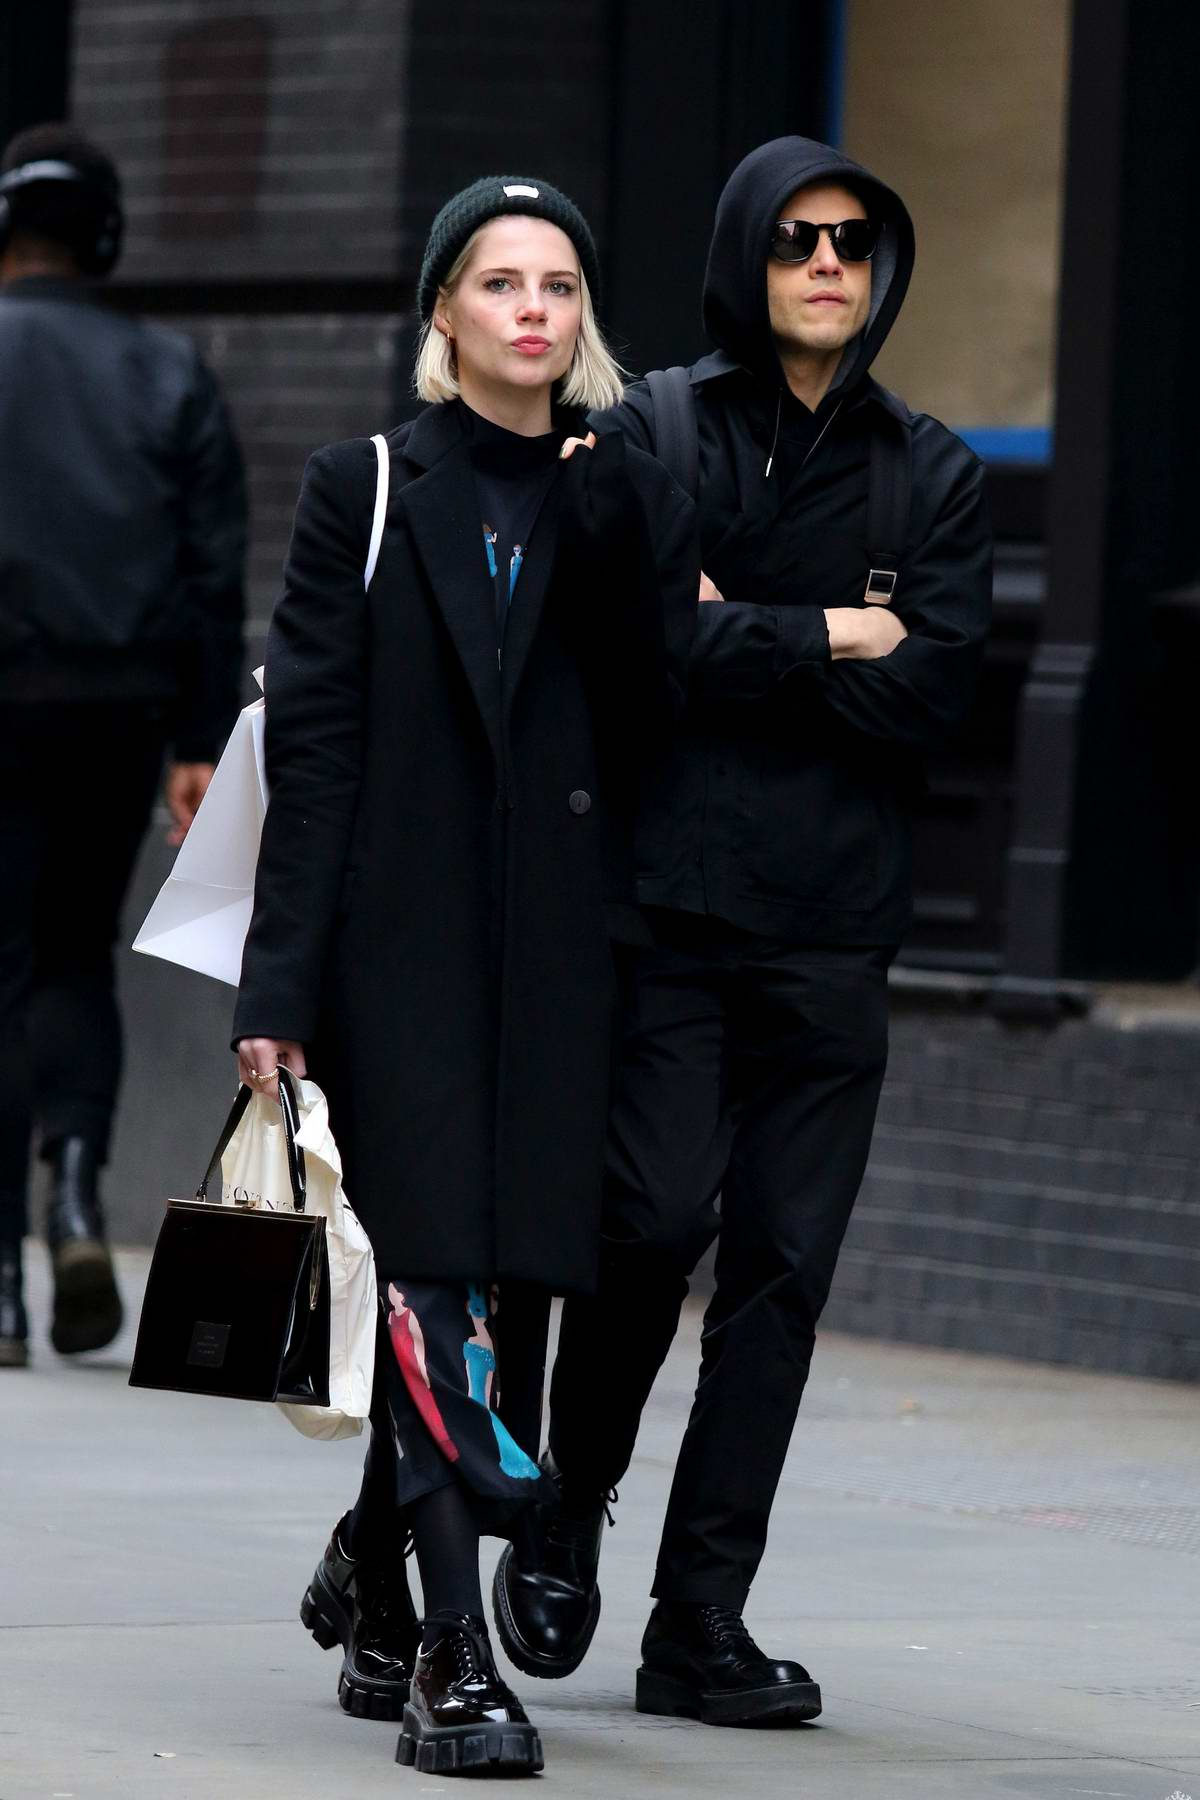 Lucy Boynton and Rami Malek take a subway ride after some shopping in Soho, New York City